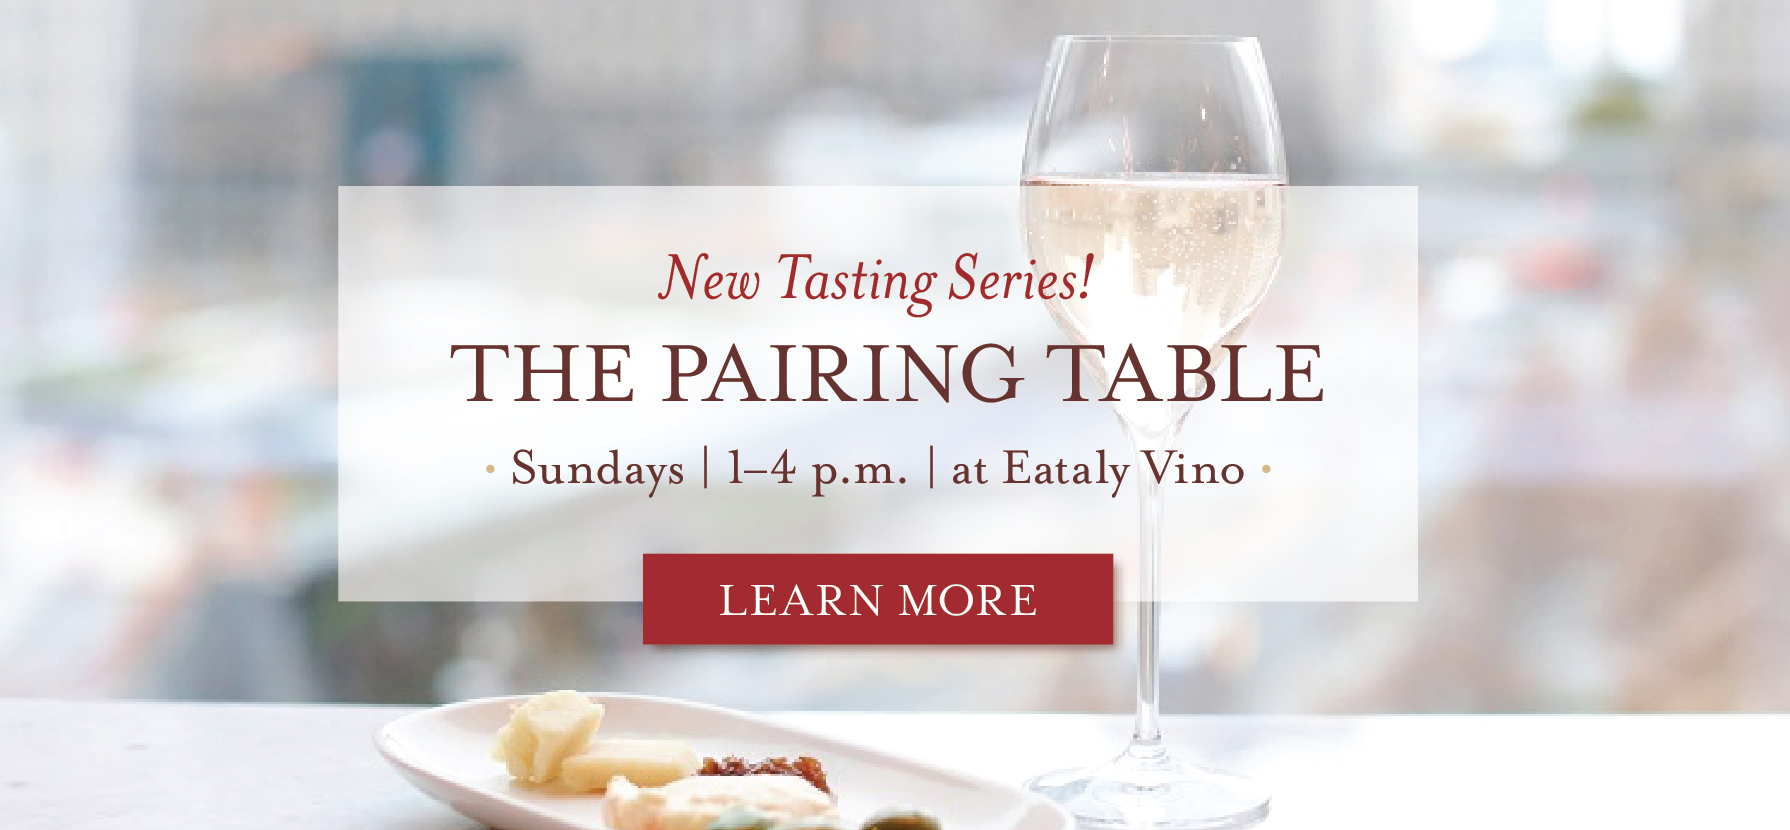 Meet Us at The Pairing Table